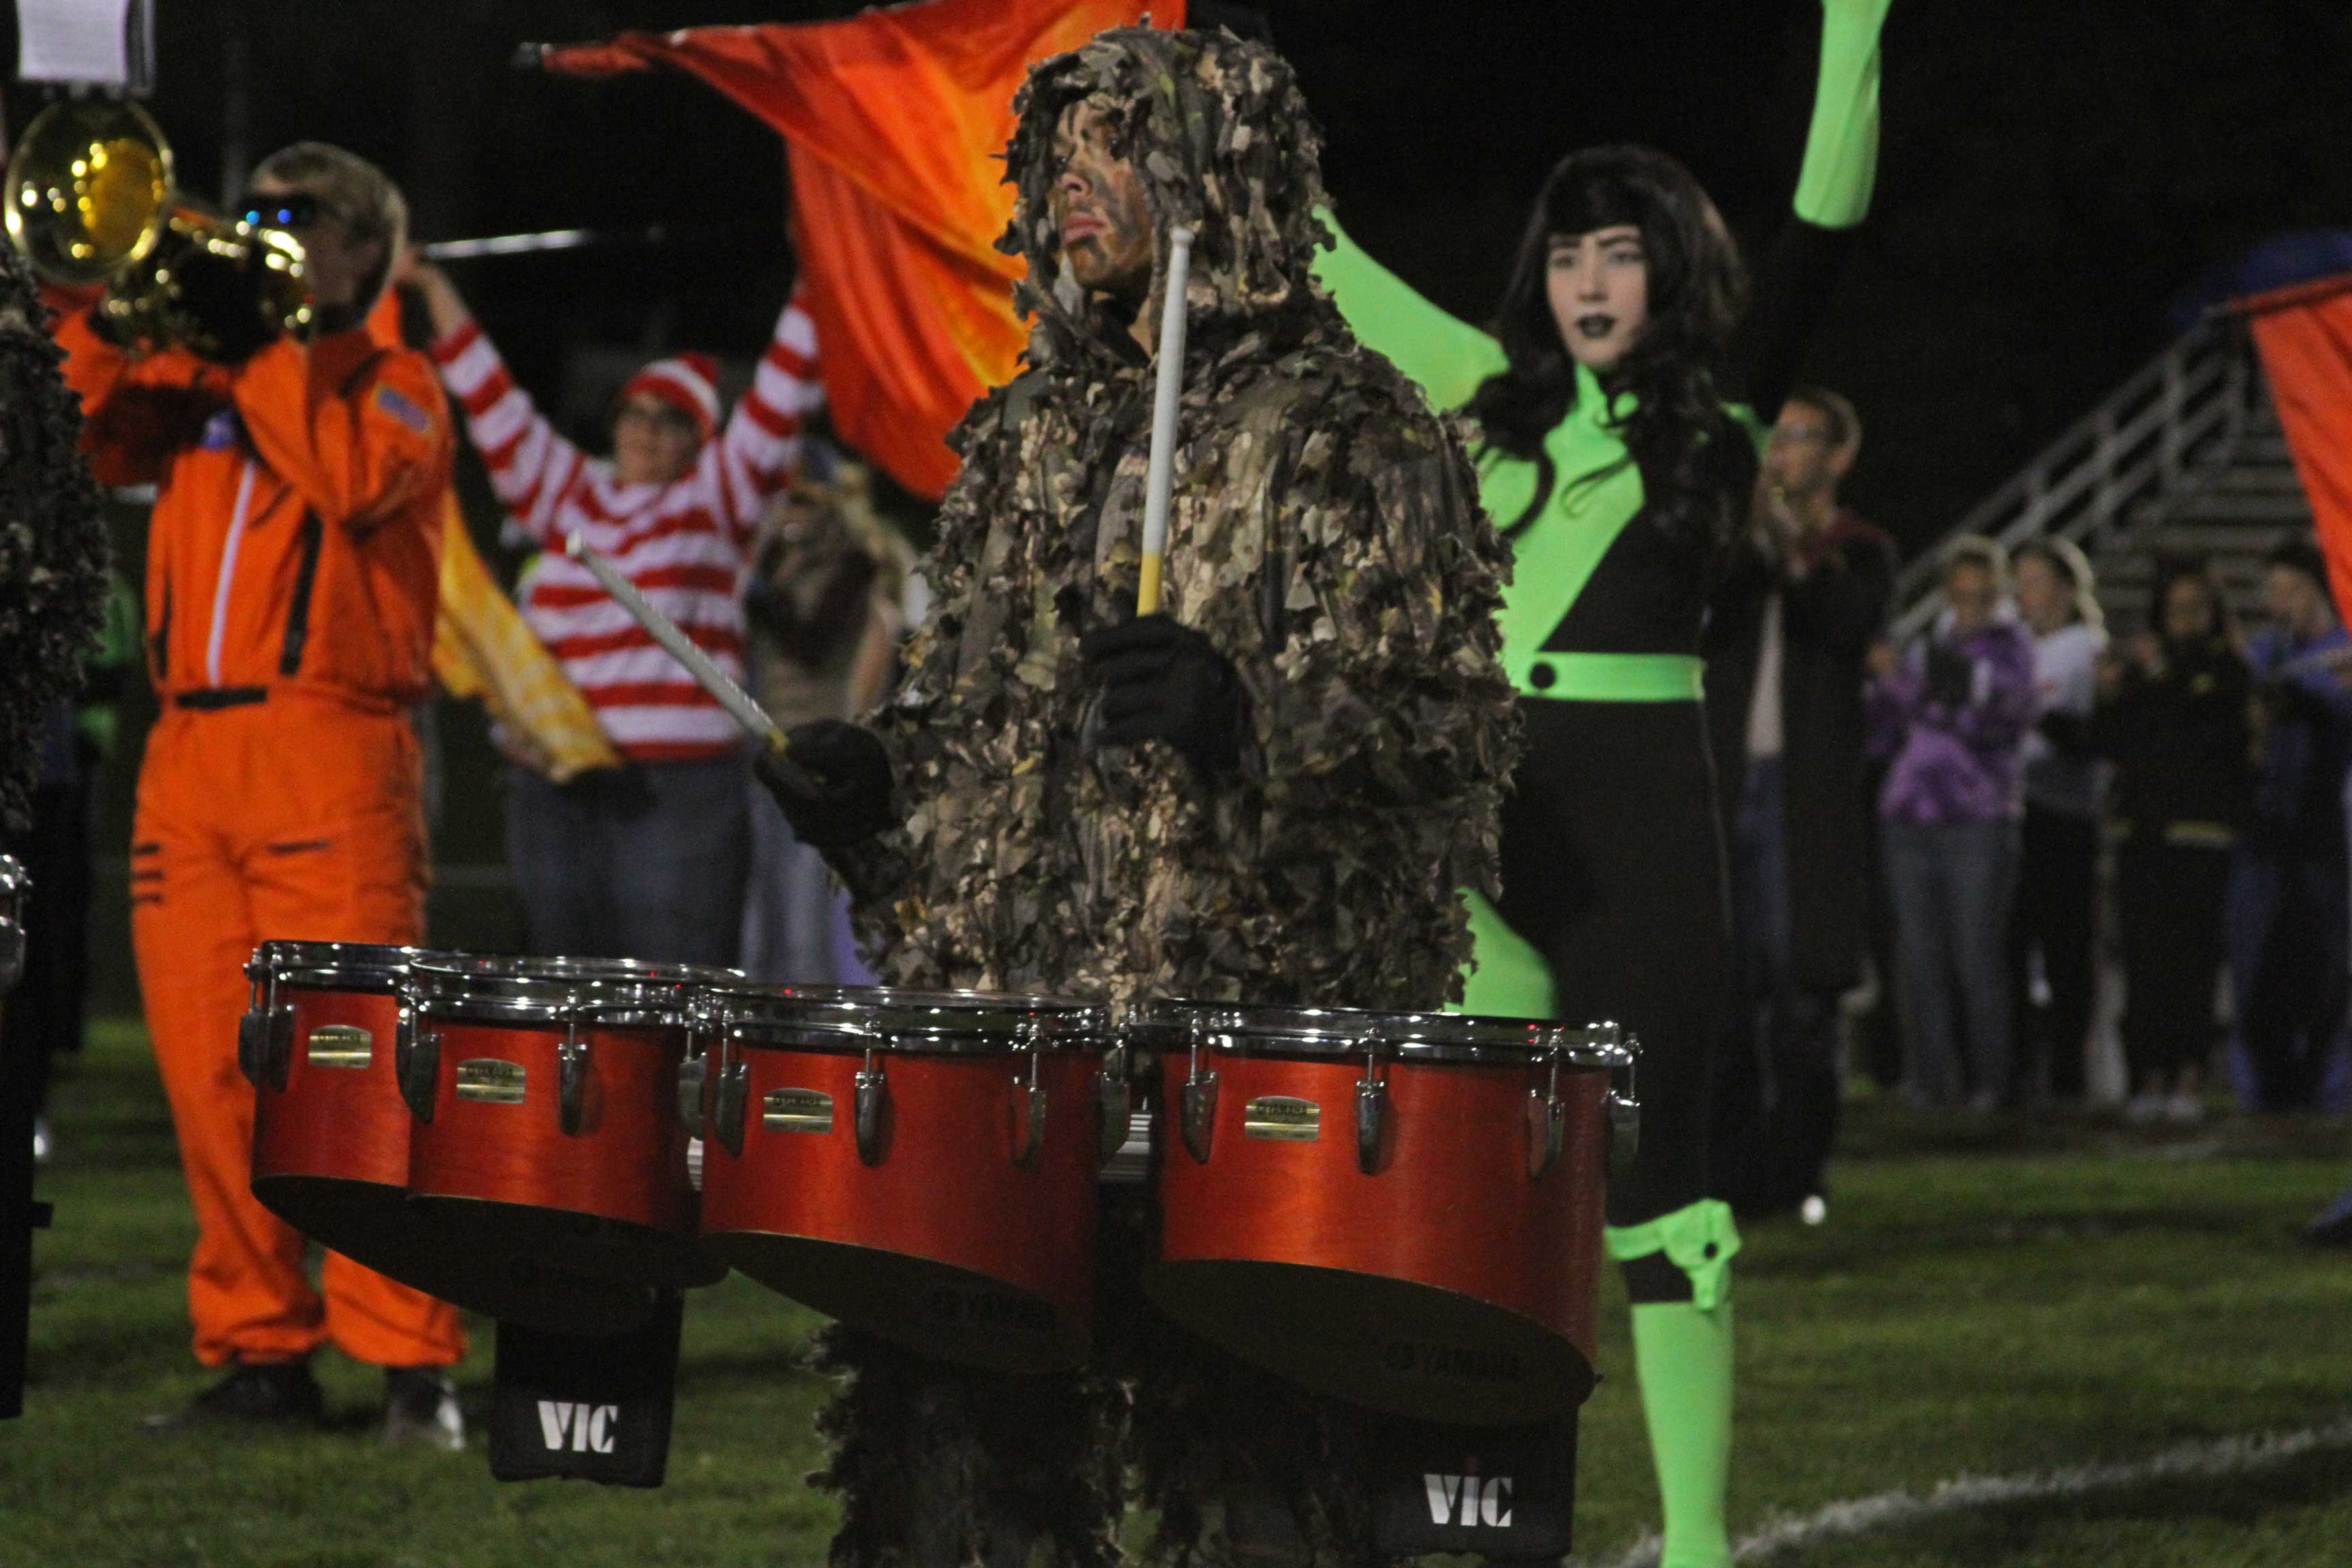 Marching+band+members+performed+their+Halloween+themed+show+in+costume+on+senior+night.